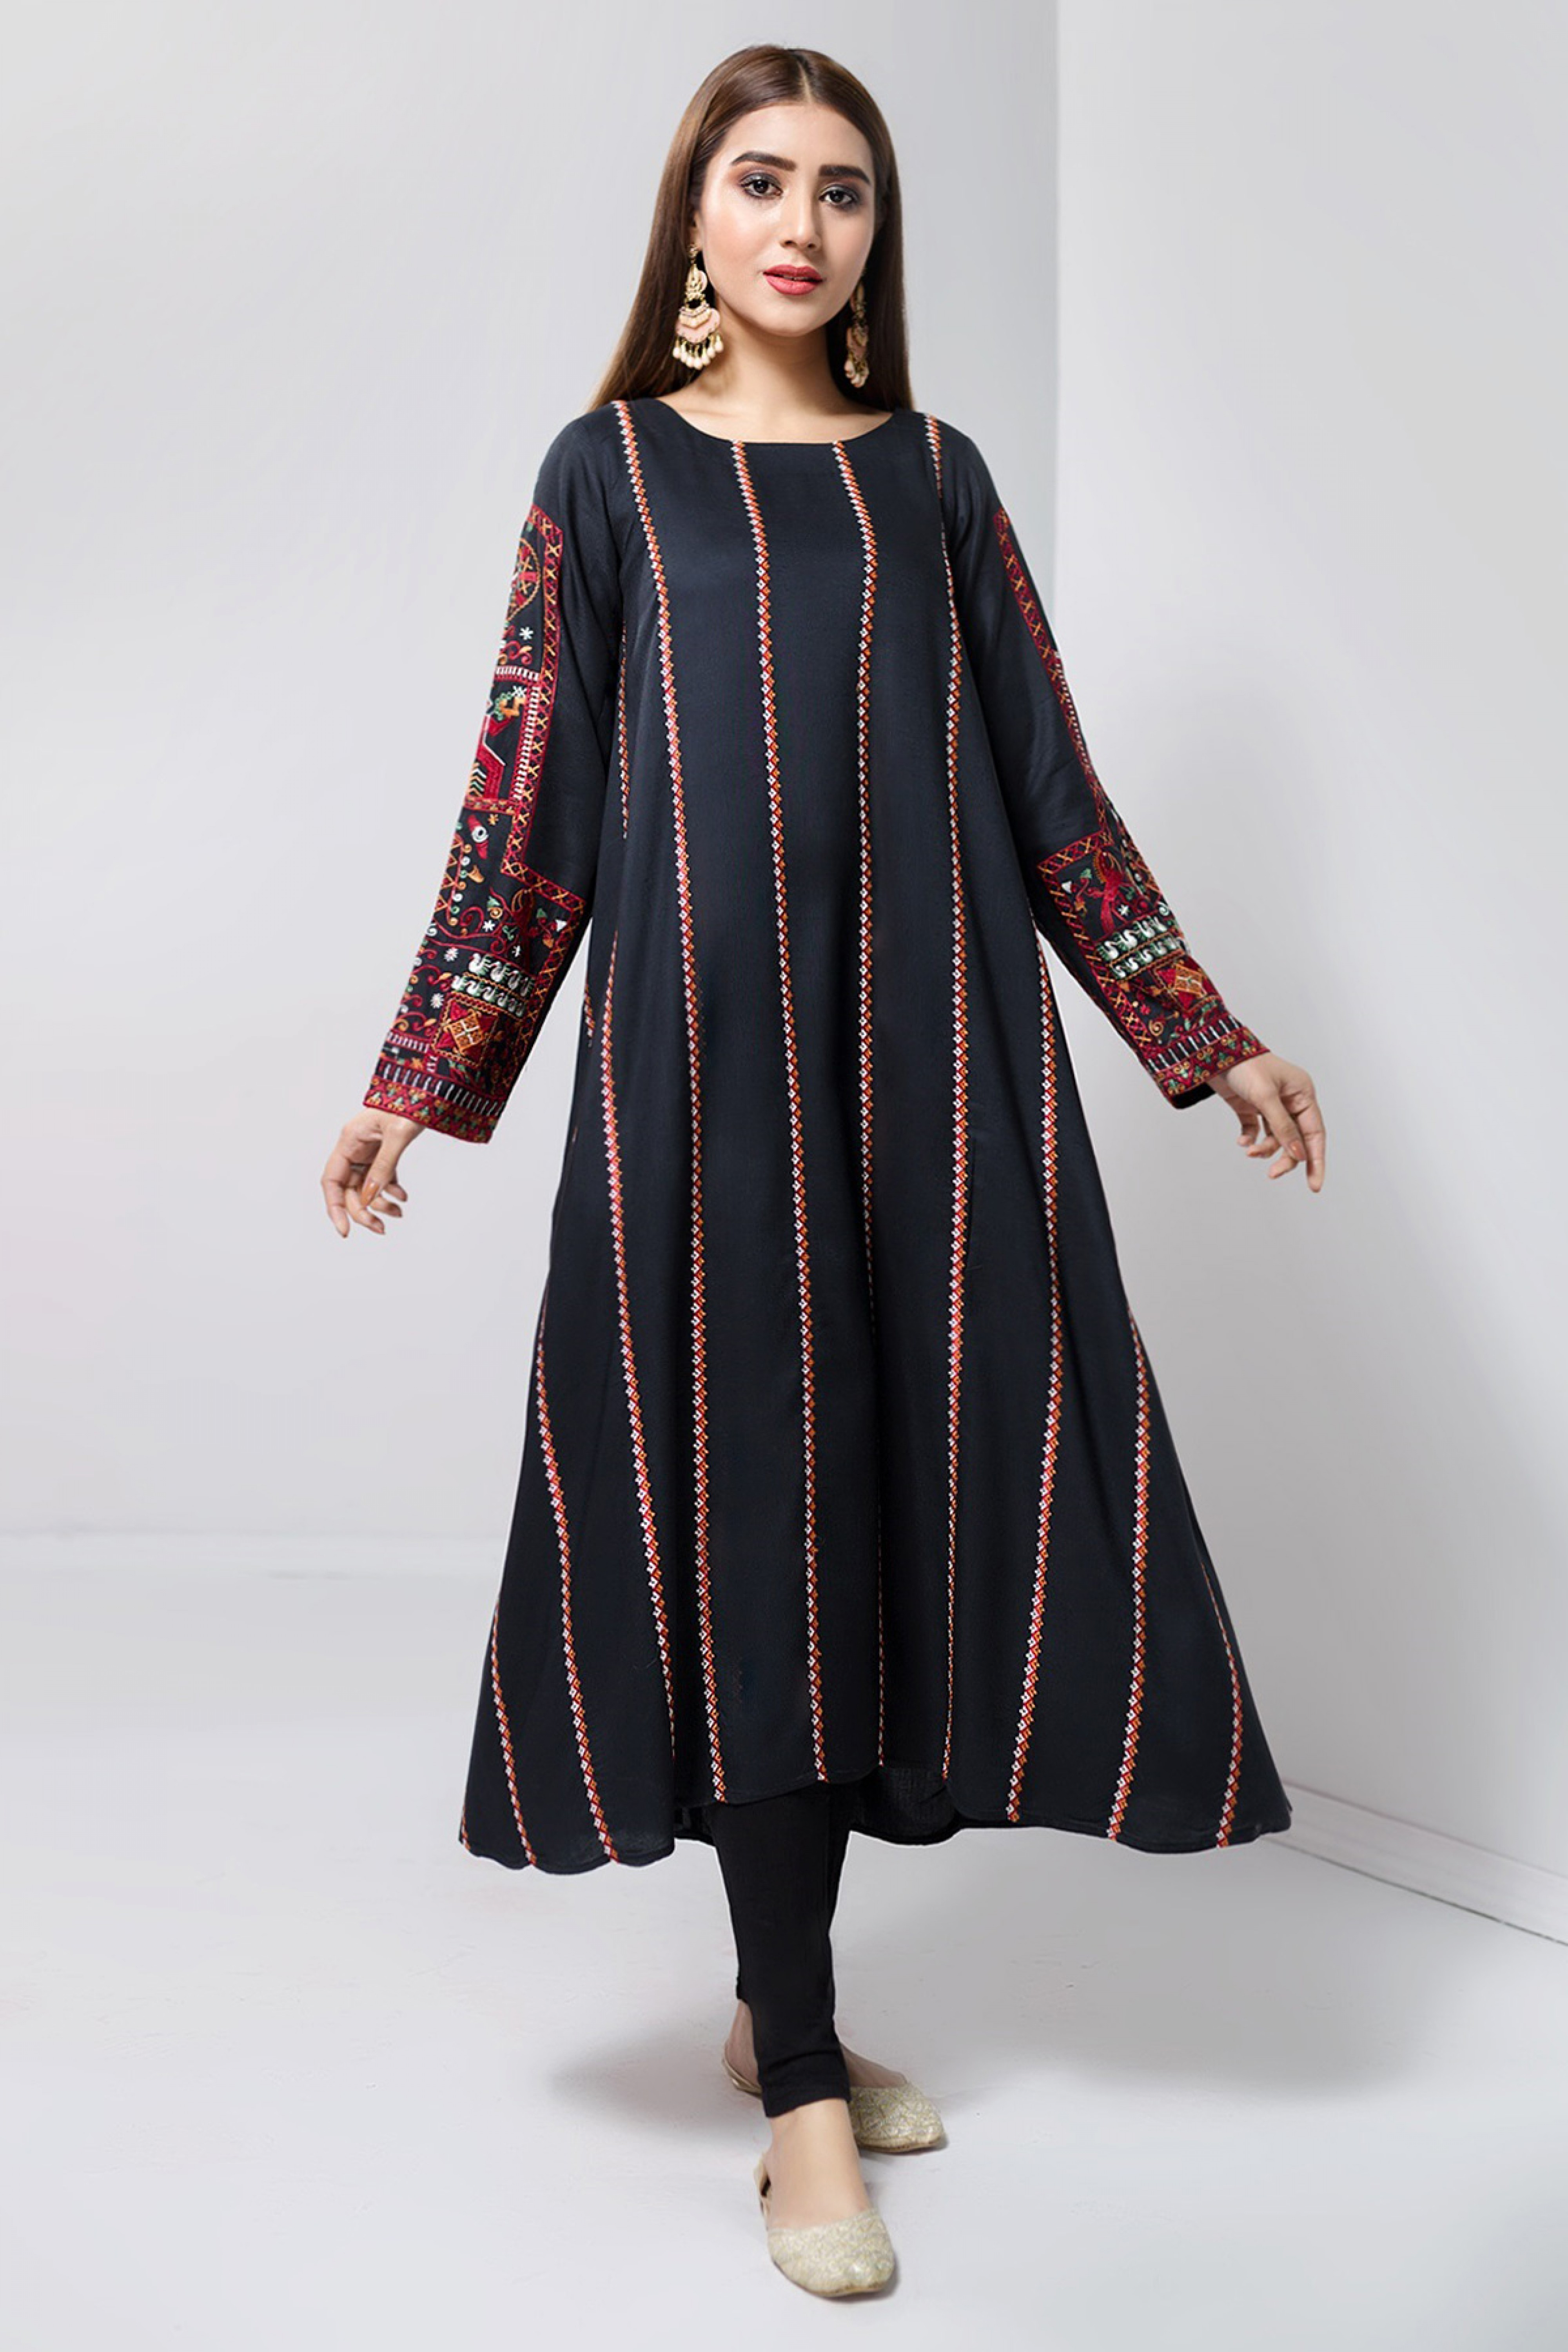 SMOKY BLACK(Embroidered Frock)